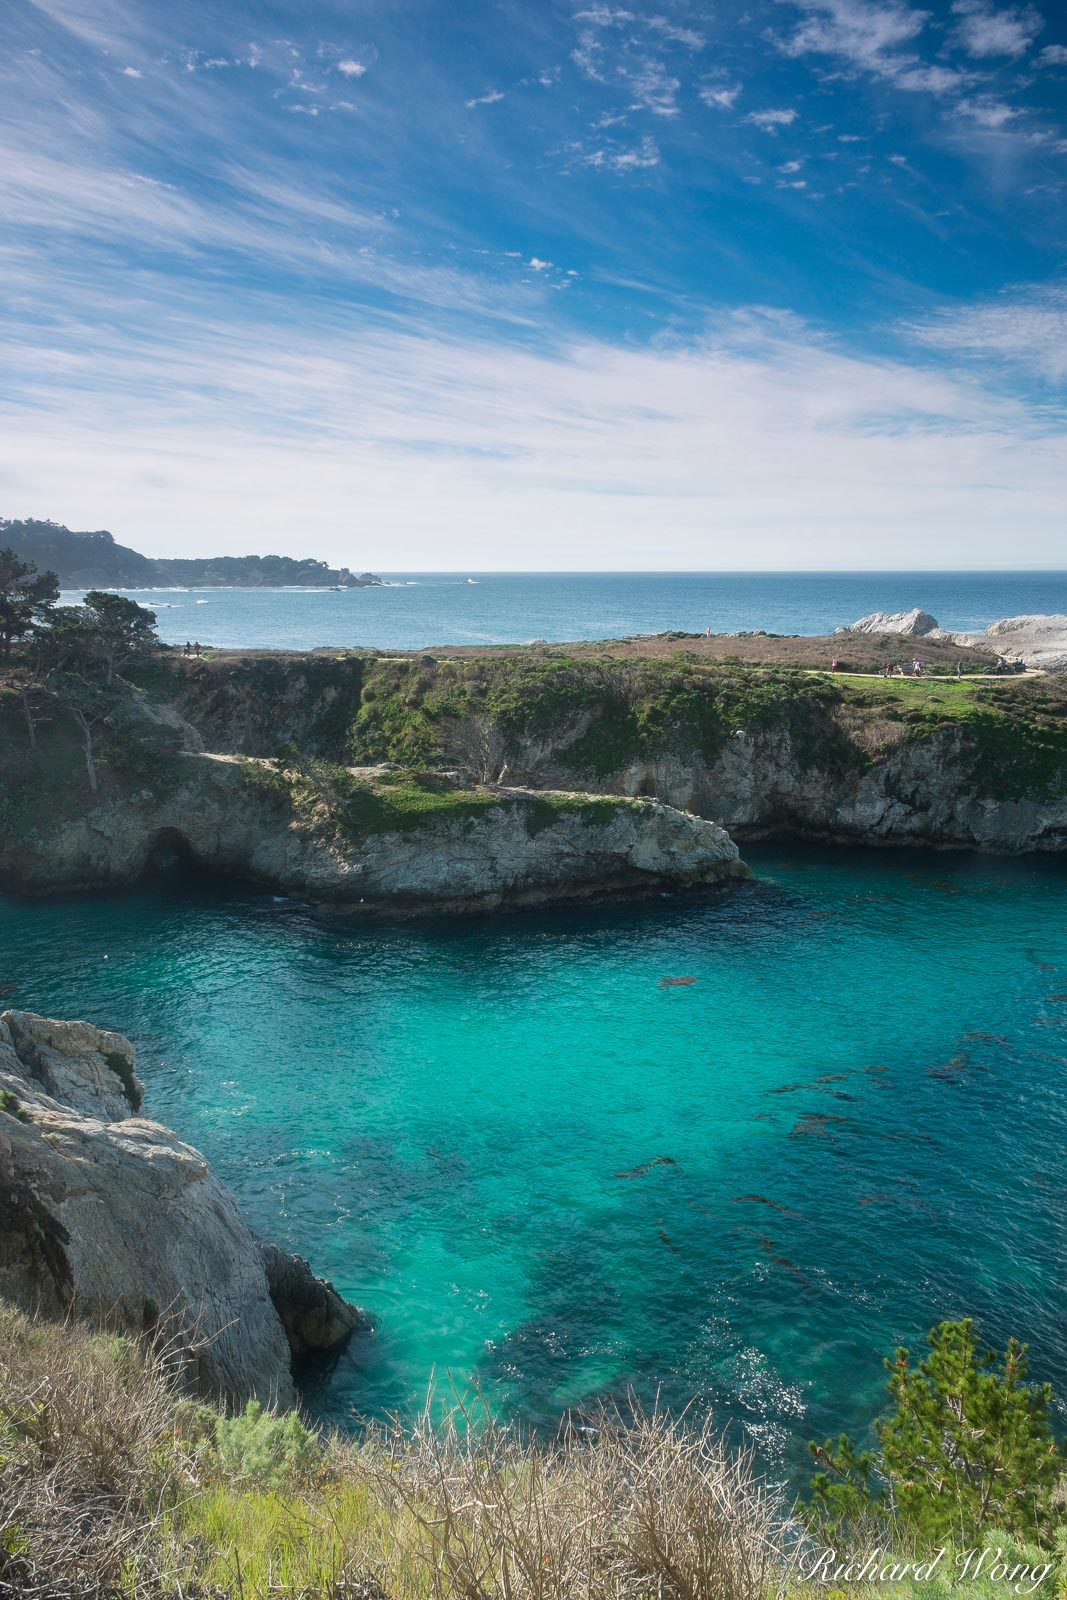 China Cove, Point Lobos State Natural Reserve, California, photo, photo